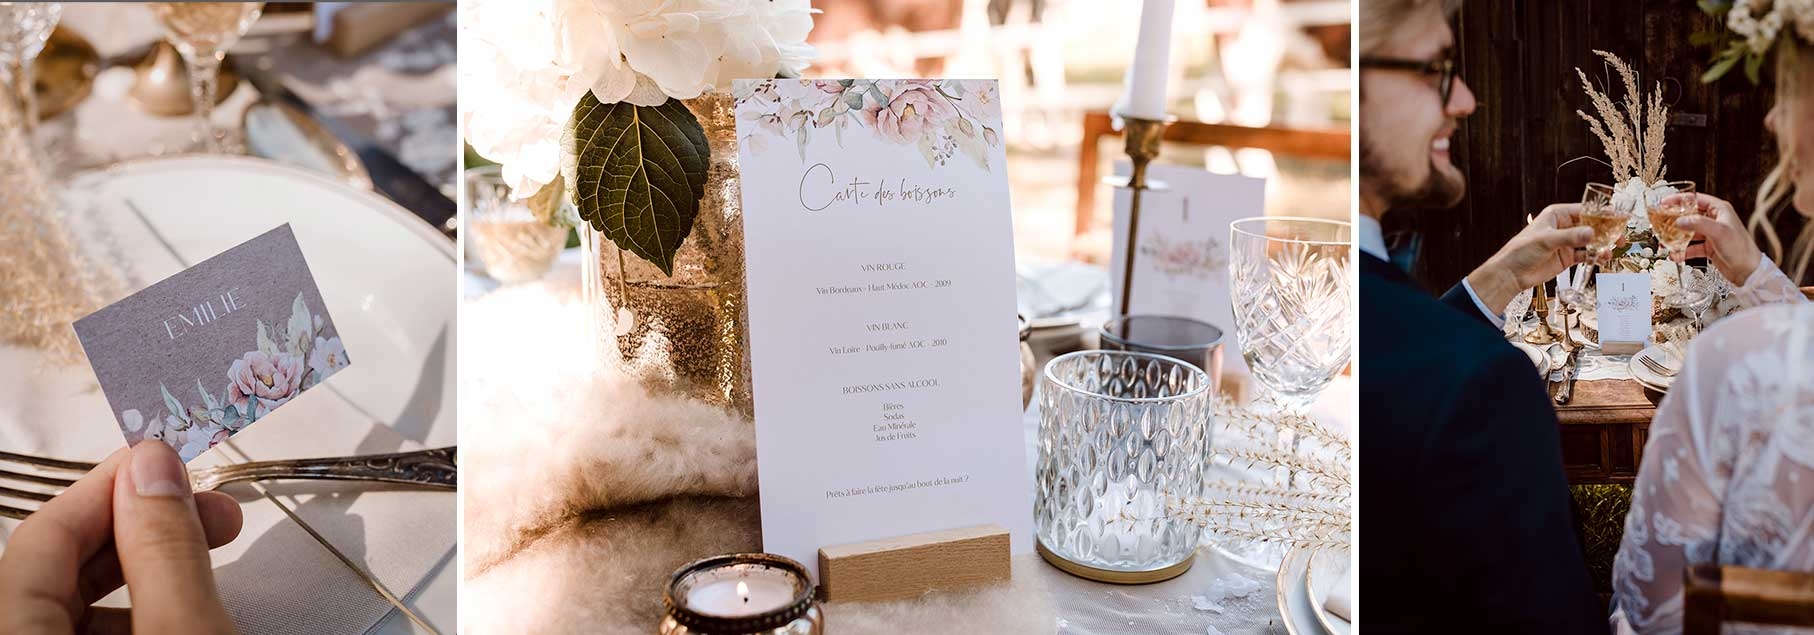 inspiration décoration table mariage